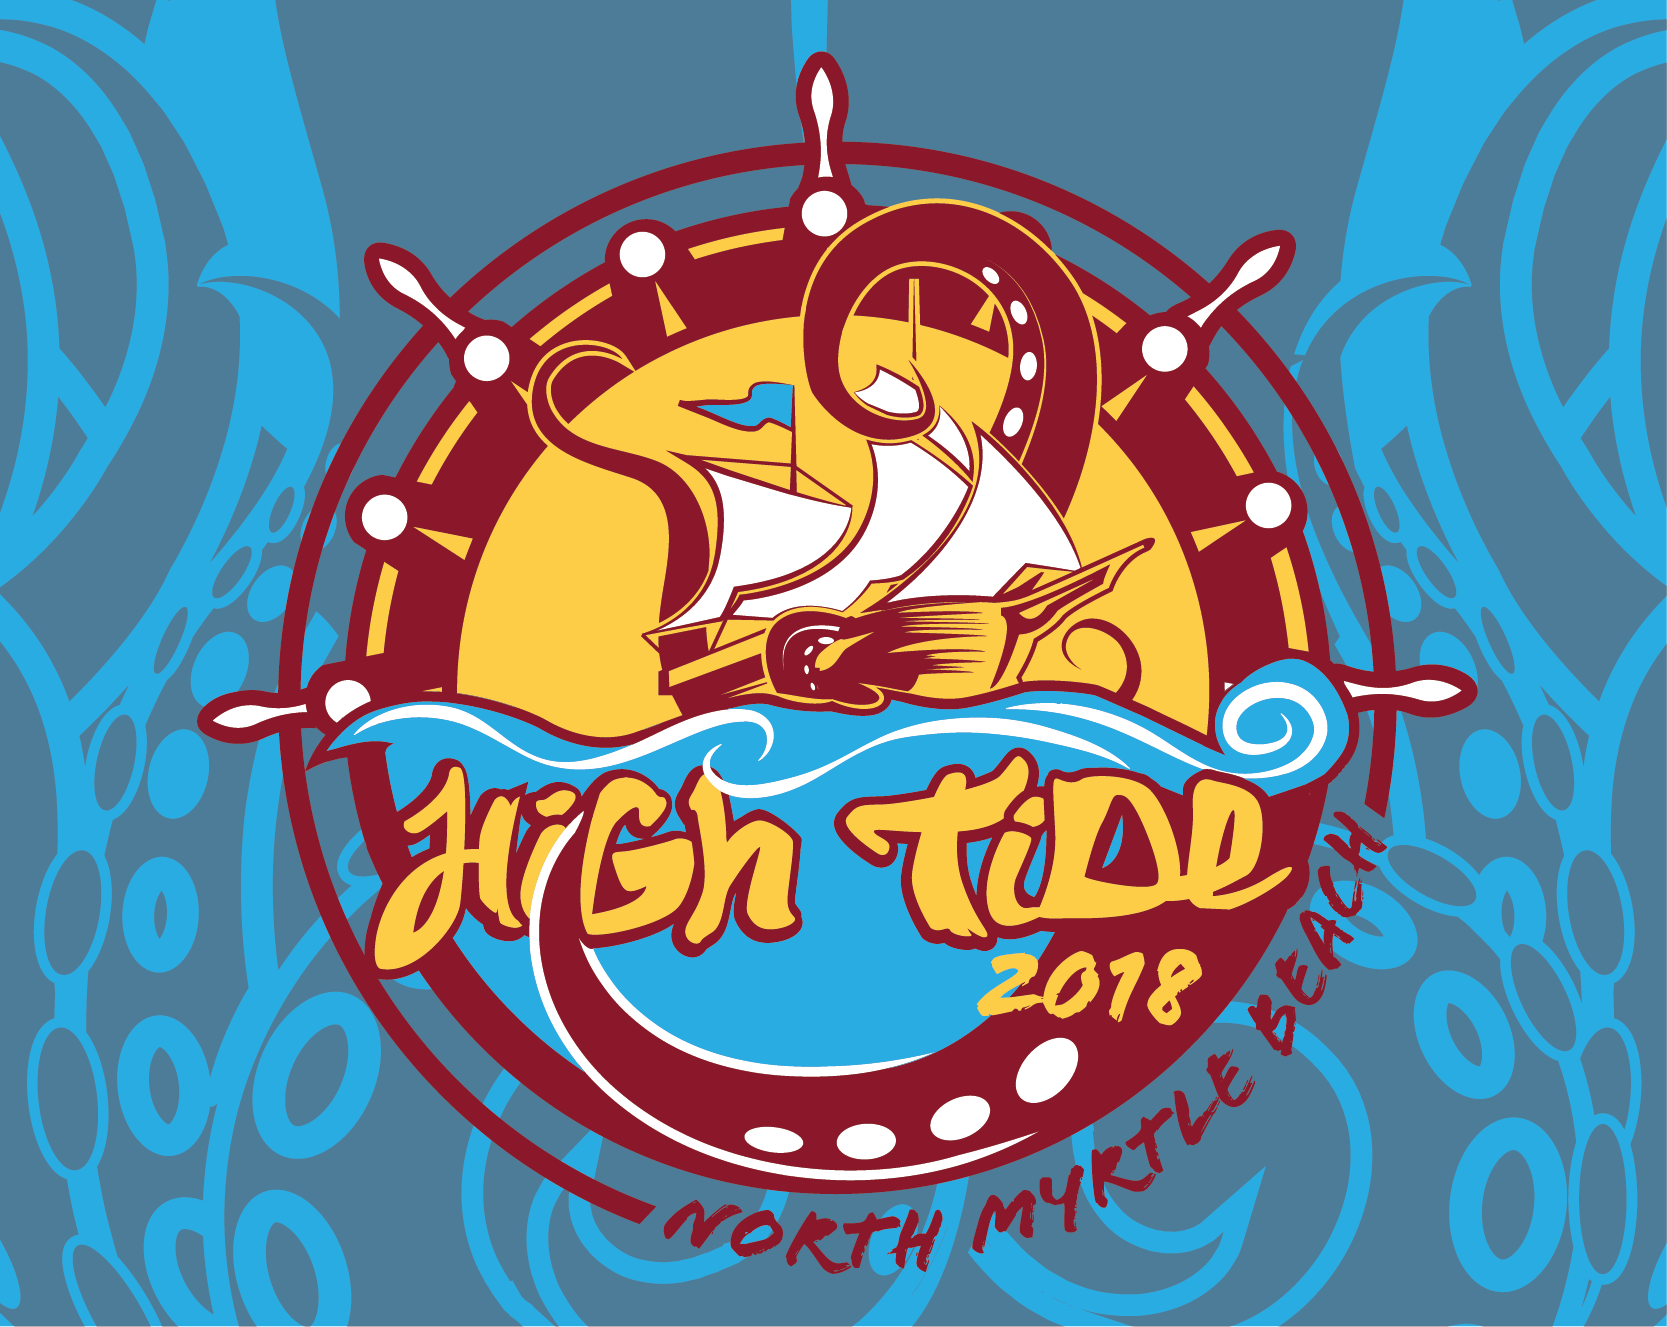 Home high tide ultimate tournament nvjuhfo Gallery